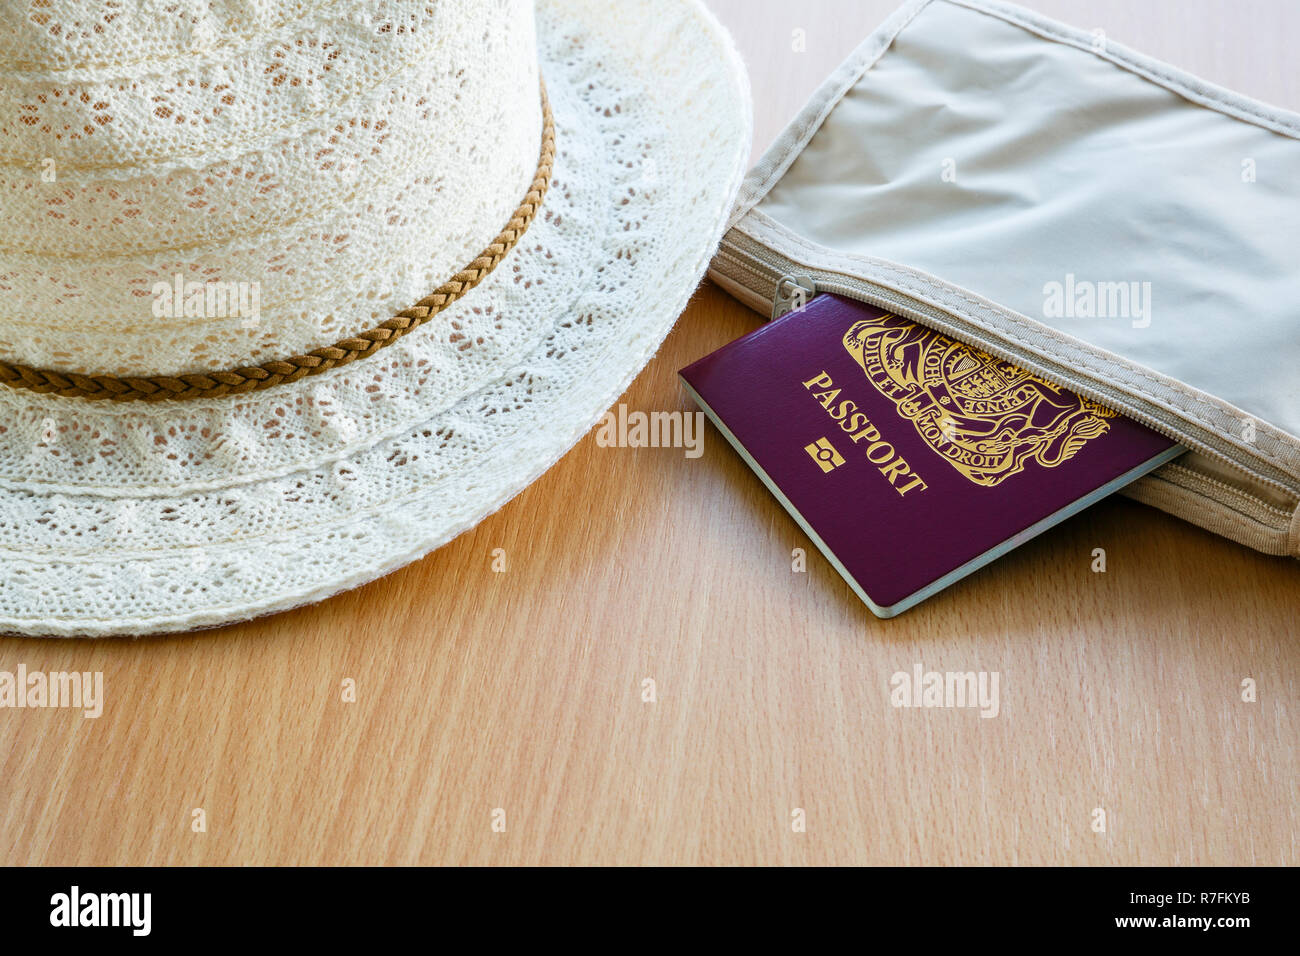 Travel things for travelling abroad British biometric passport in a wallet with lady's sunhat on a table top. England, UK, Britain - Stock Image